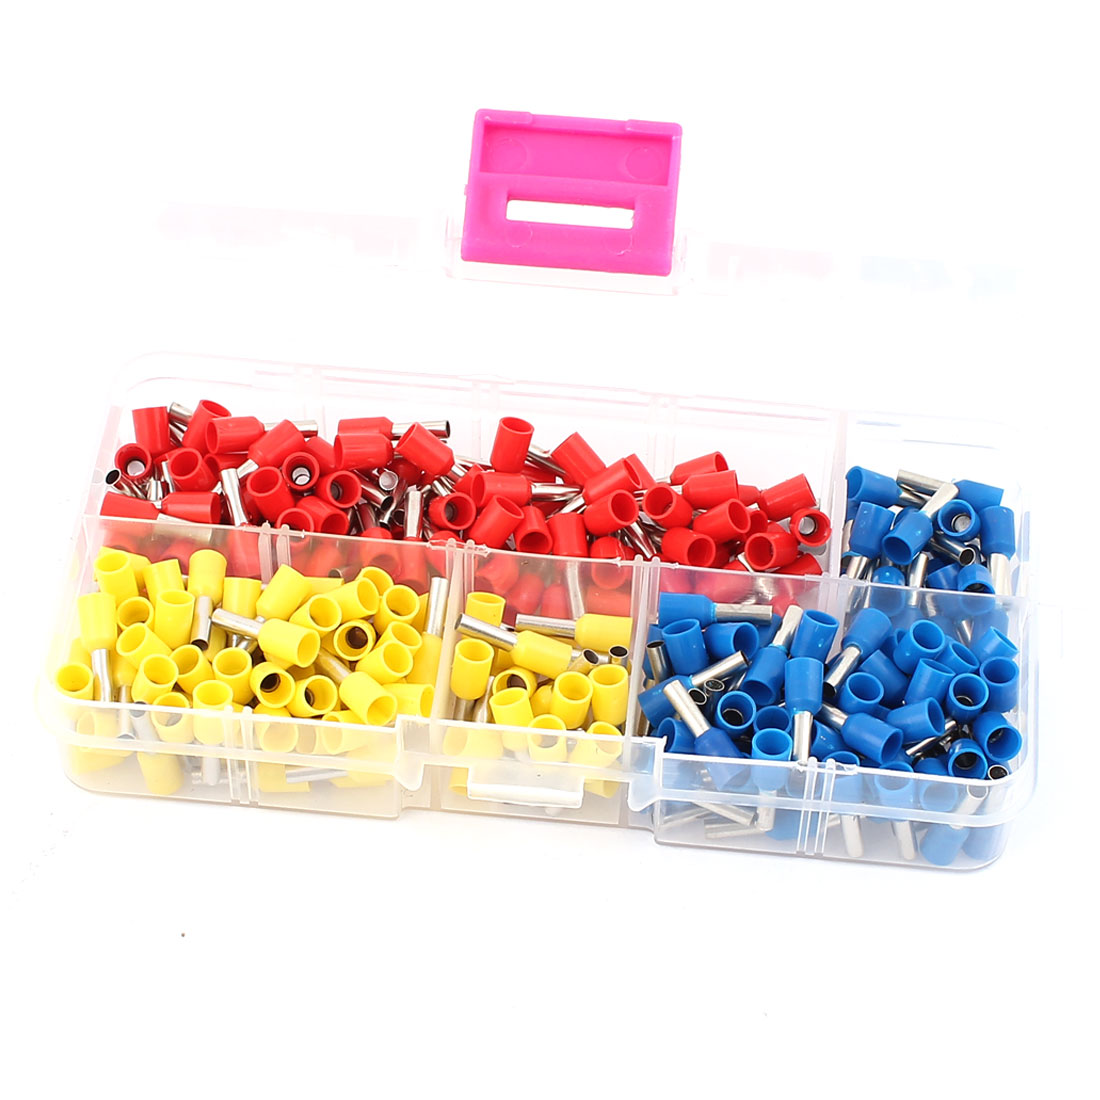 270PCS AWG14 Insulated Ferrule Pin Cord End Terminal Wire Copper Crimp Connector Assorted Set